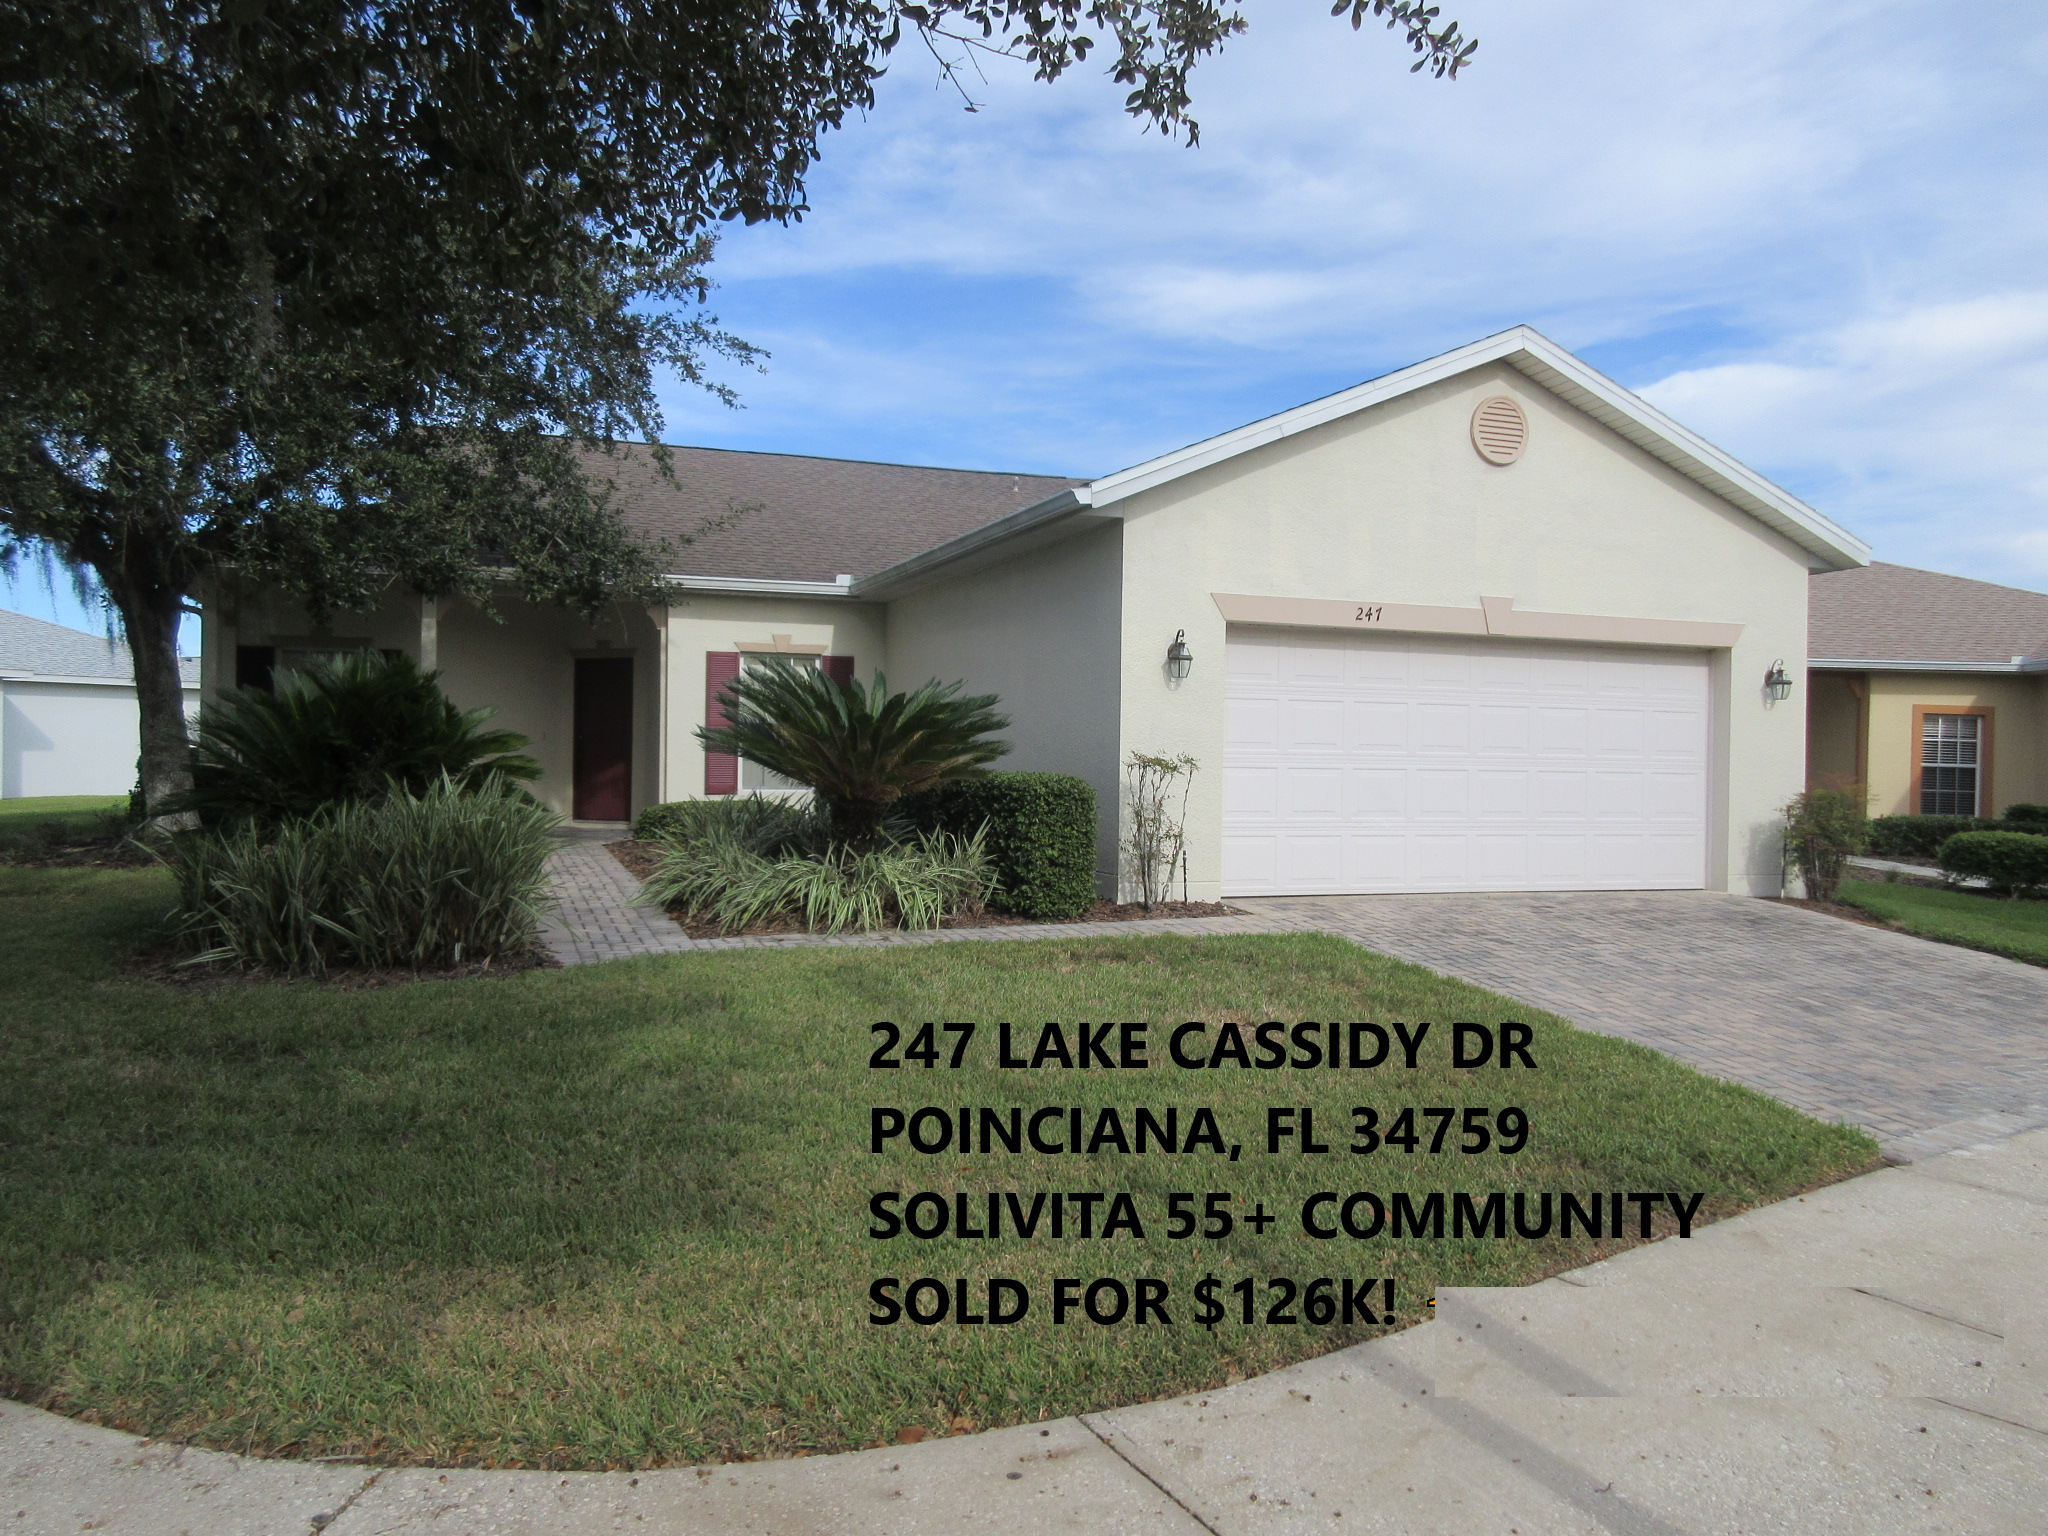 247 Lake Cassidy Dr